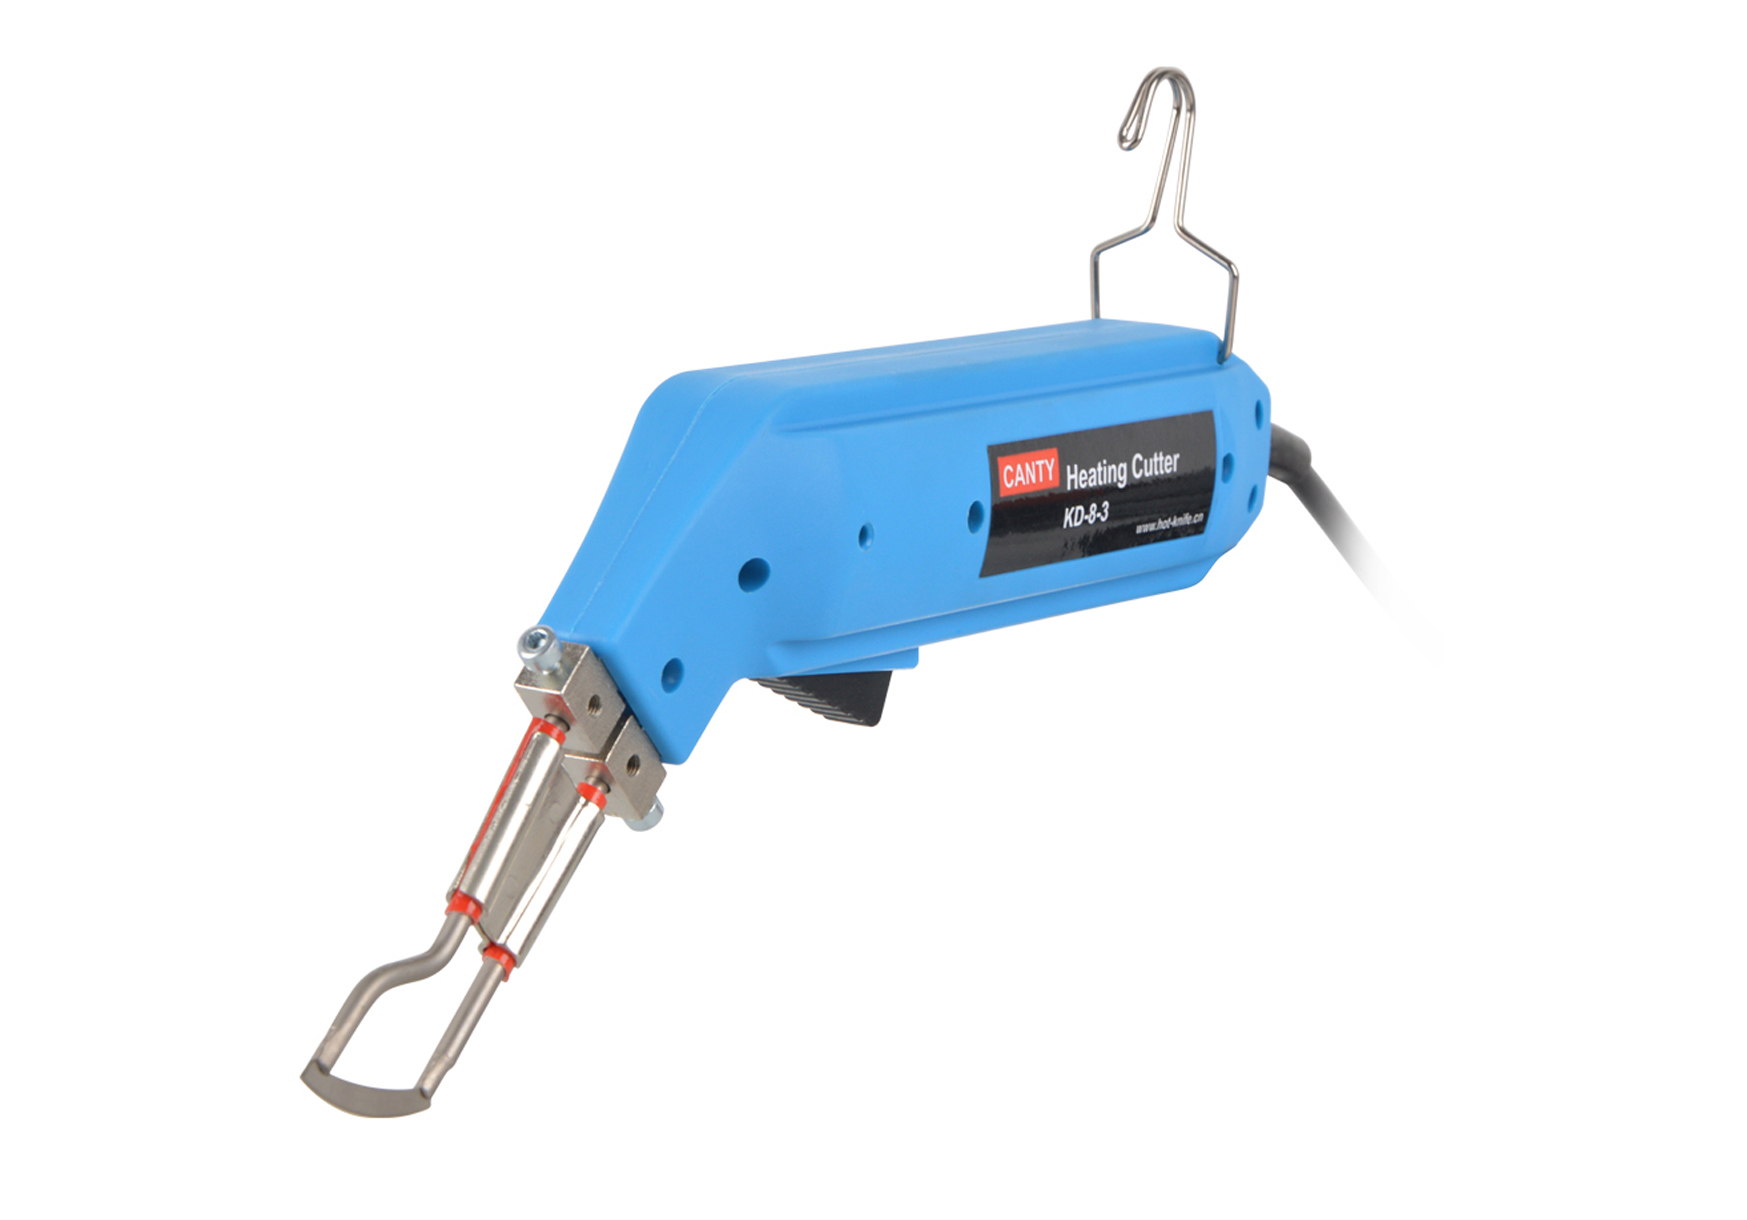 Hot Knife Electric Rope Cutter/Fabric Cutter